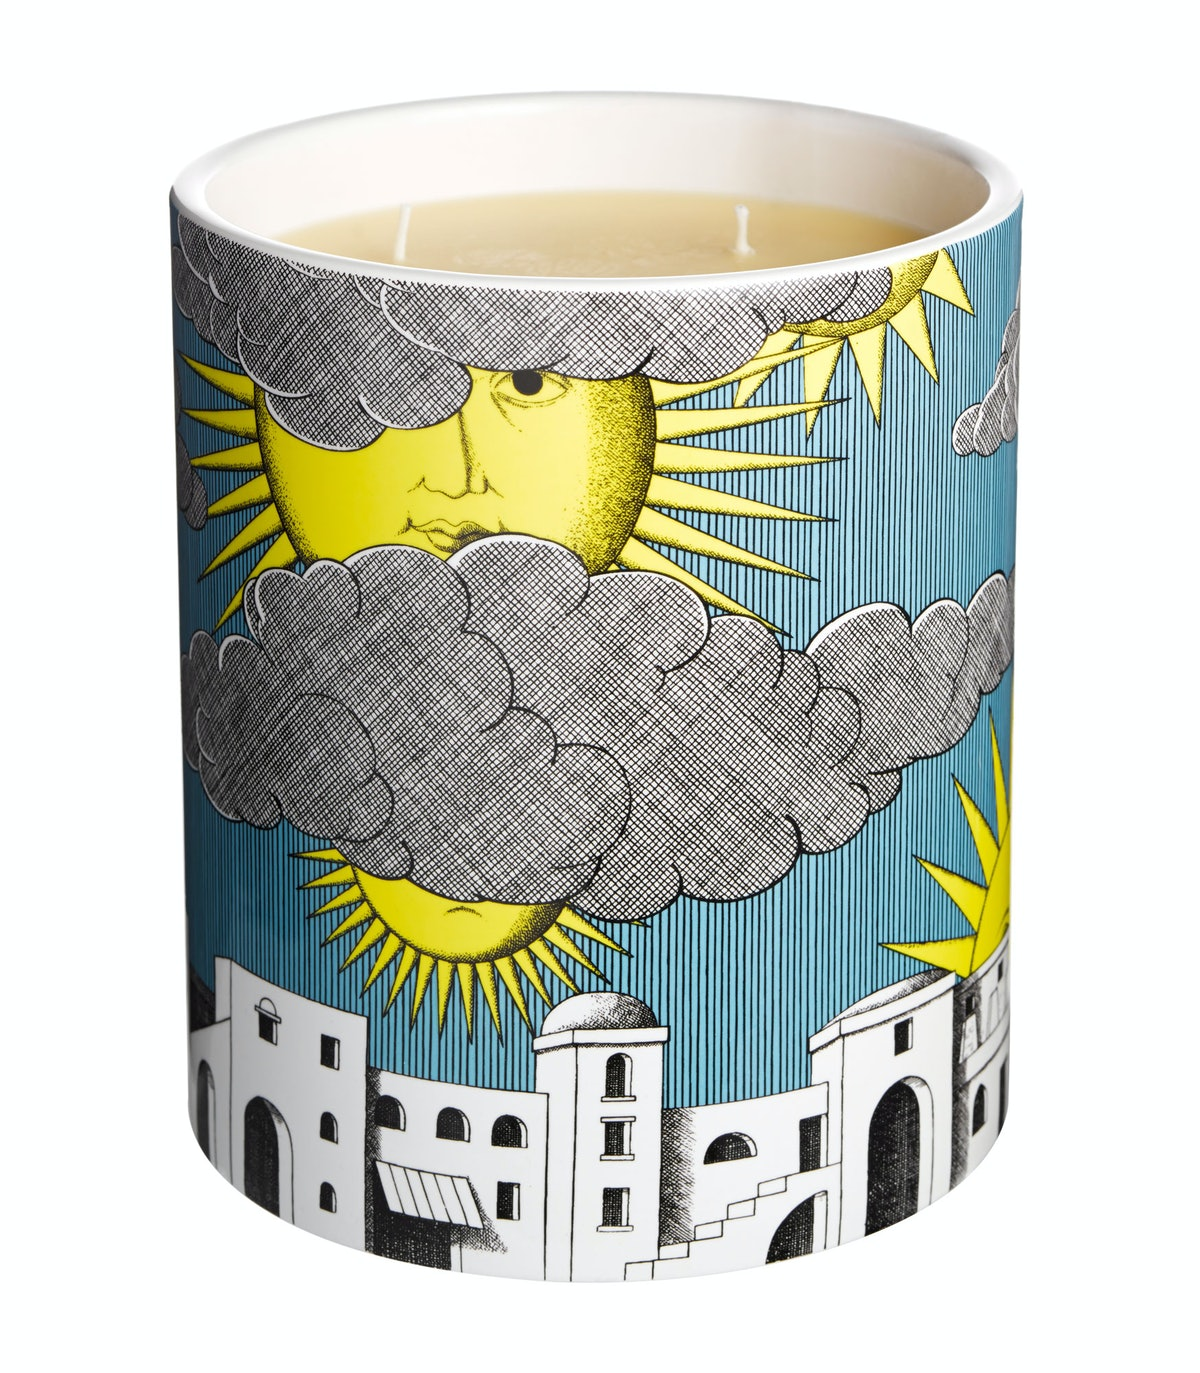 Fornasetti Profumi Sole di Capri large scented candle, $495, [barneys.com](http://rstyle.me/n/dm9uf3...